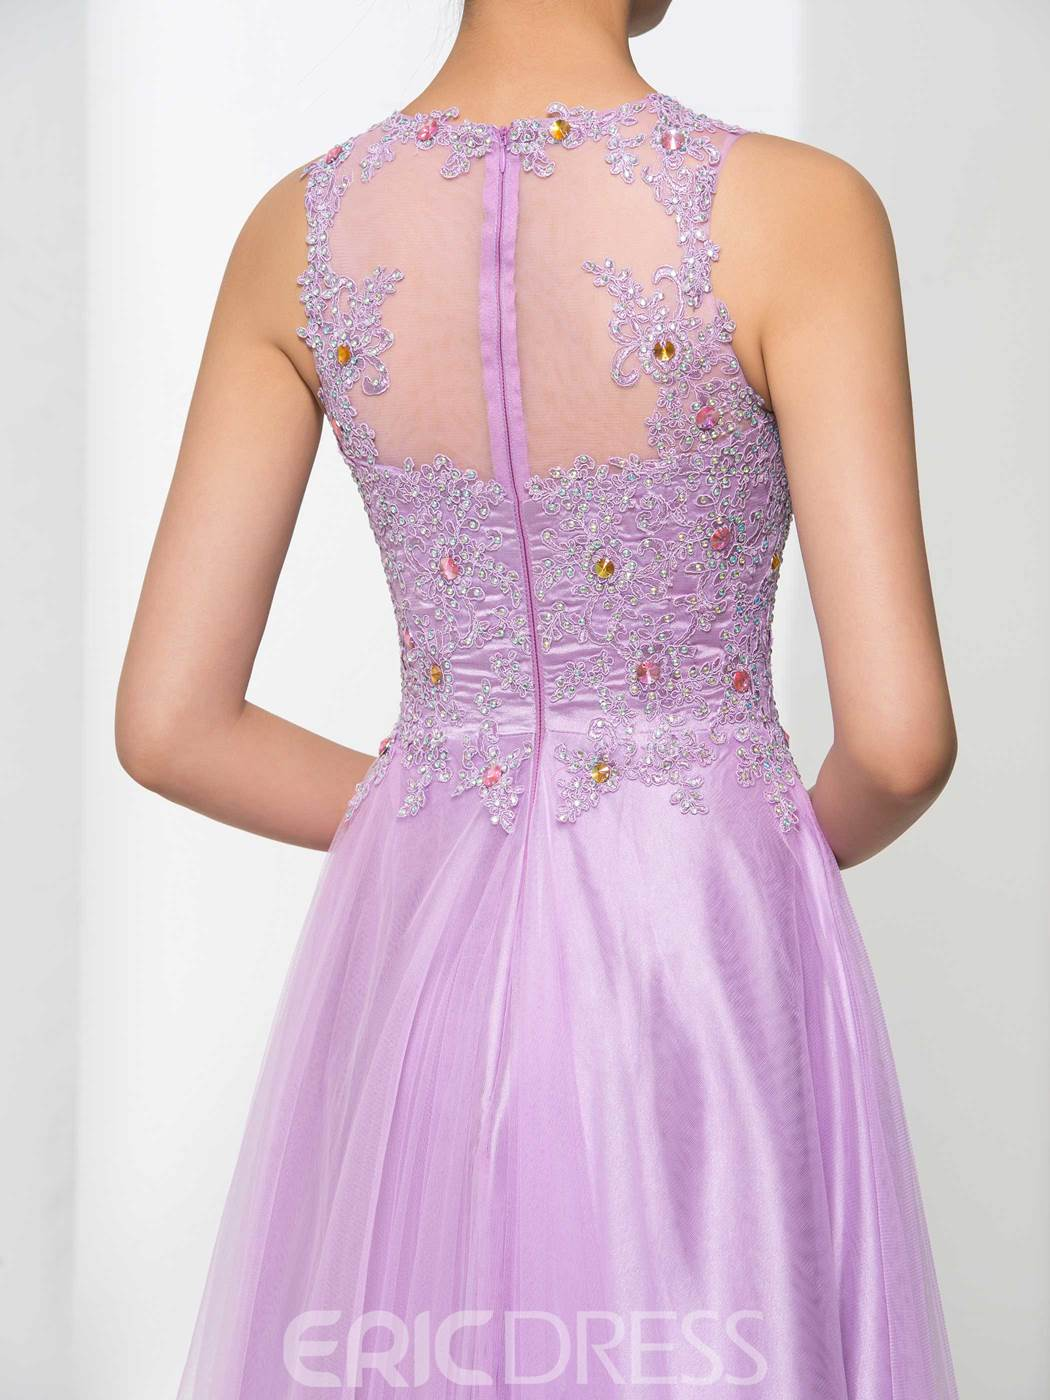 Ericdress Scoop Neck Appliques Beading Long Prom Dress